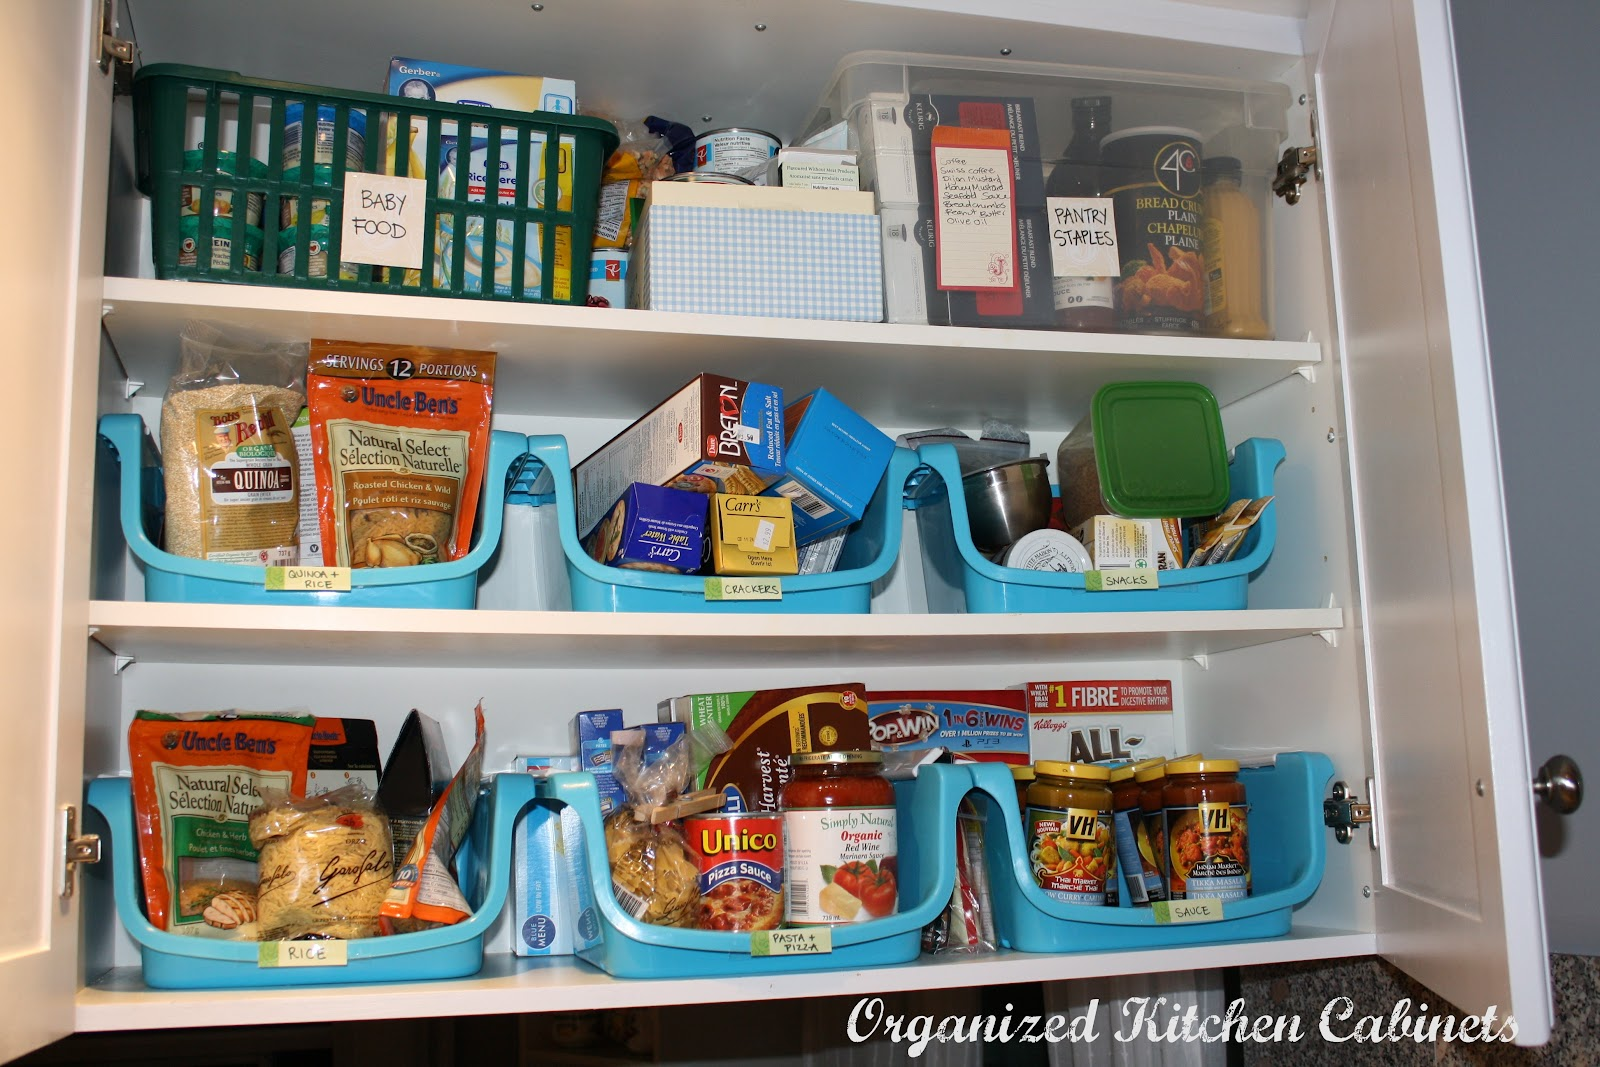 Simcoe street organizing kitchen cupboards food storage for Organization ideas for kitchen pantry